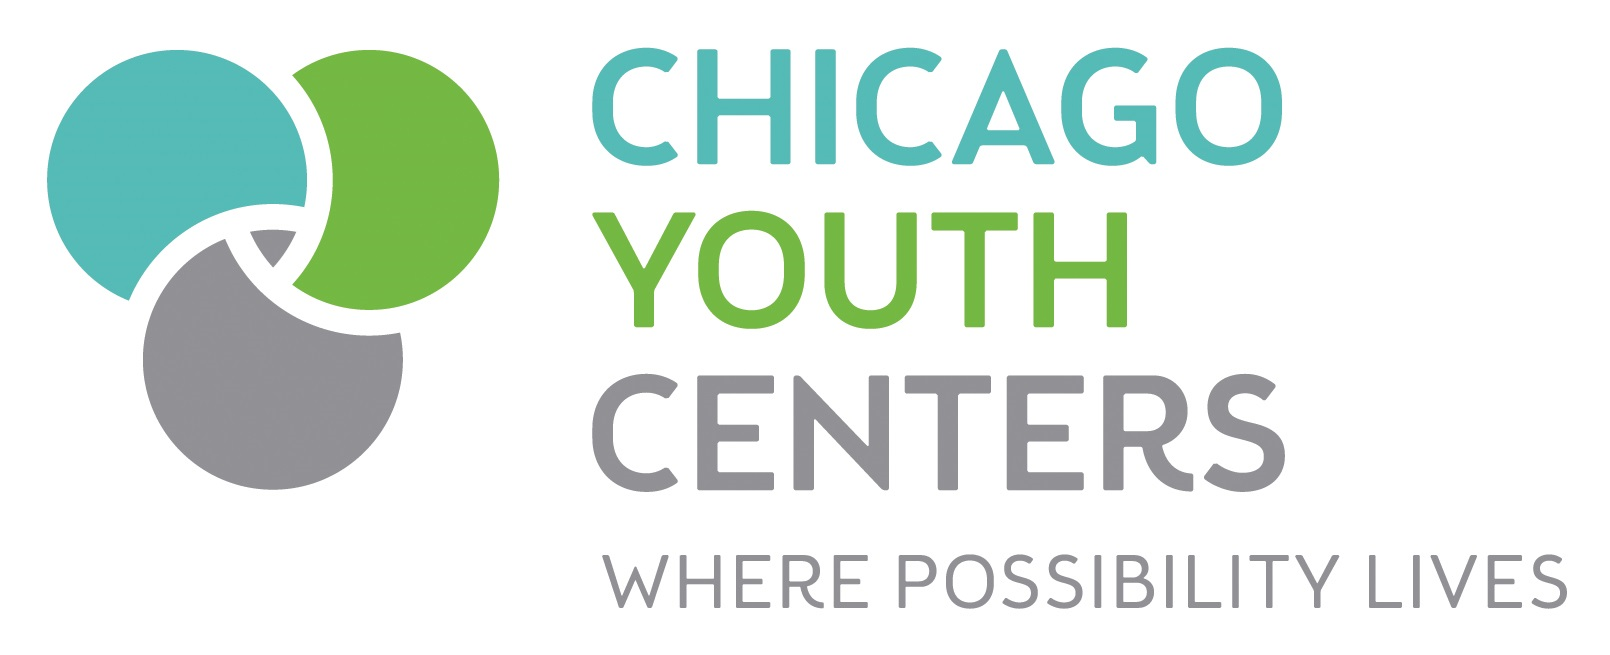 Chicago Youth Centers